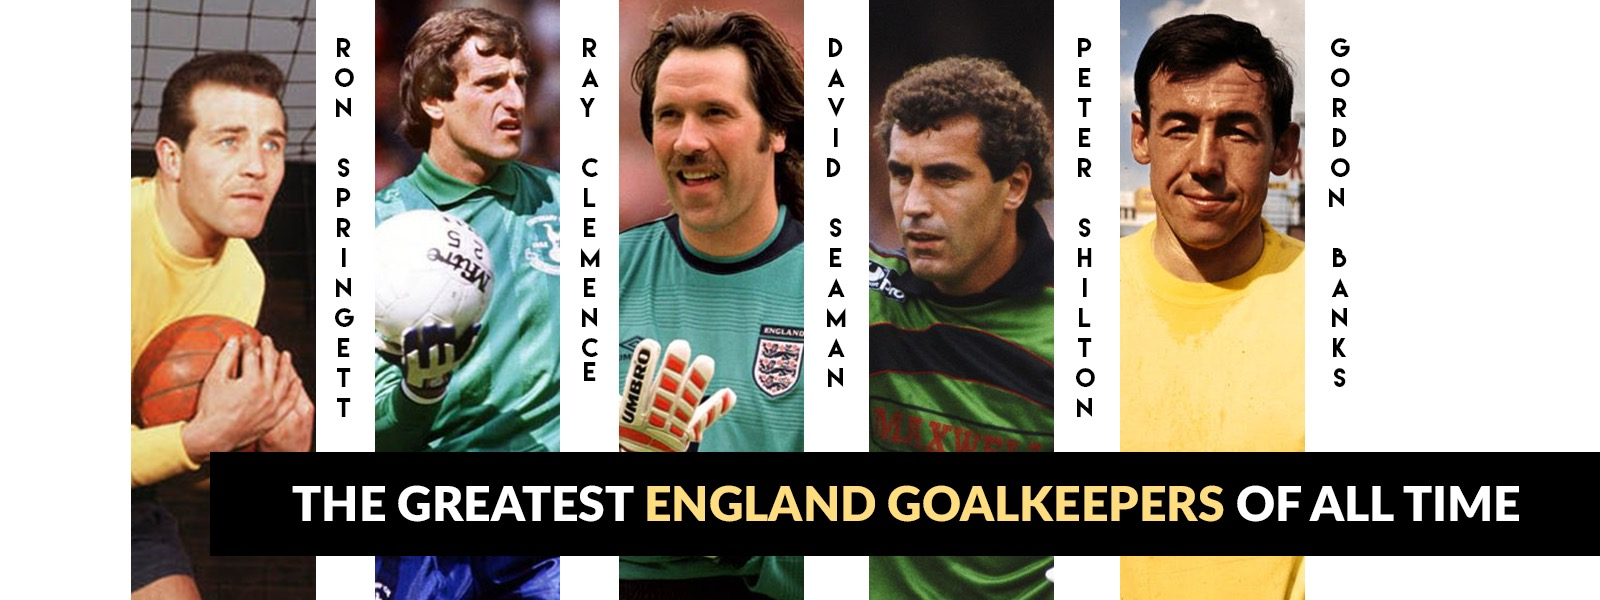 The Greatest England Goalkeepers of All Time